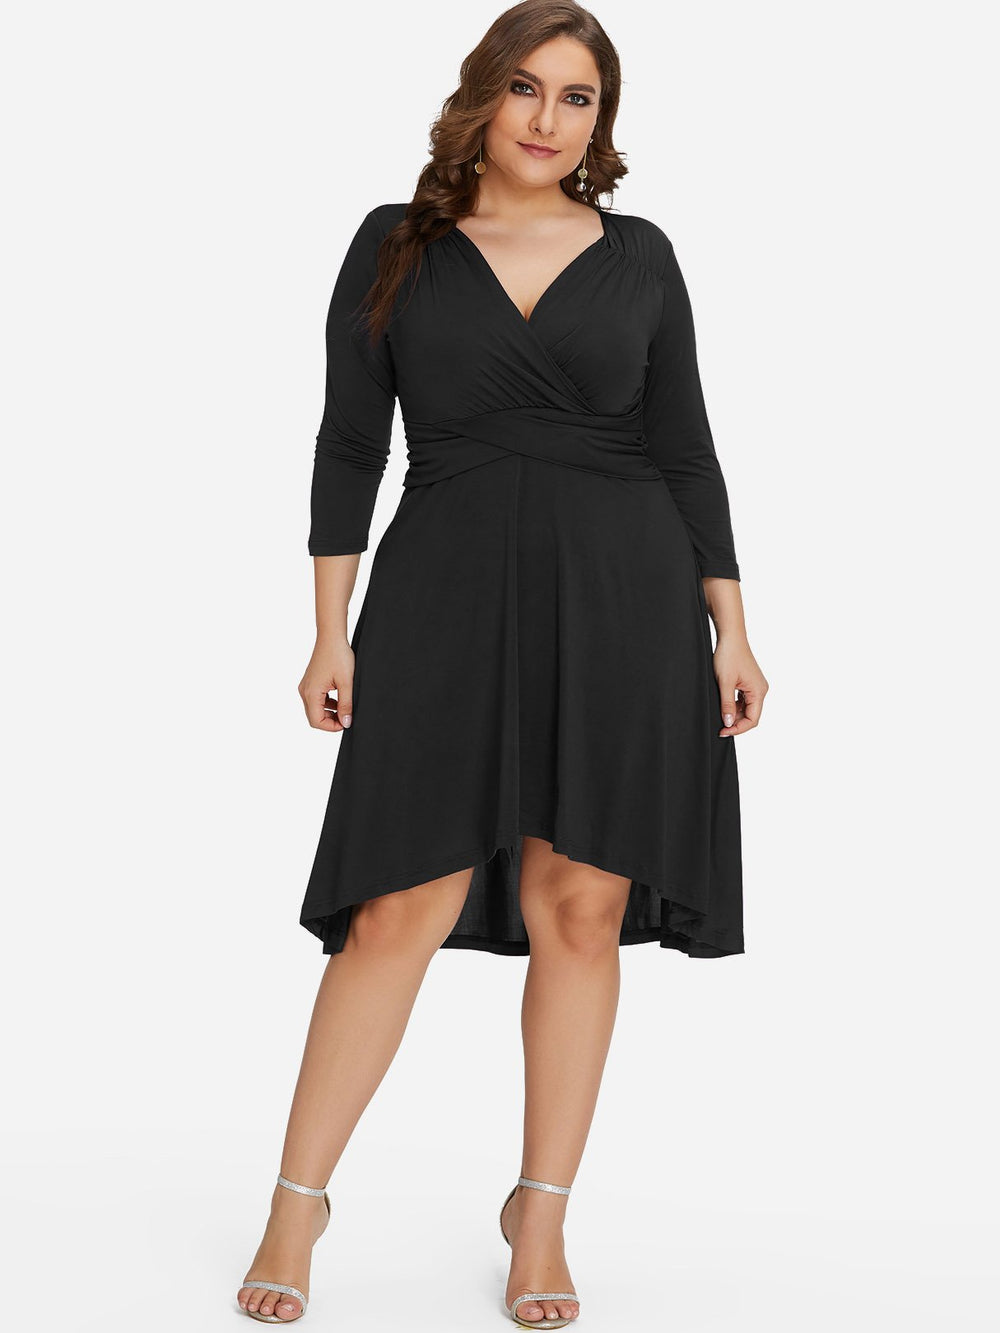 Plus Size Evening Dresses Usa